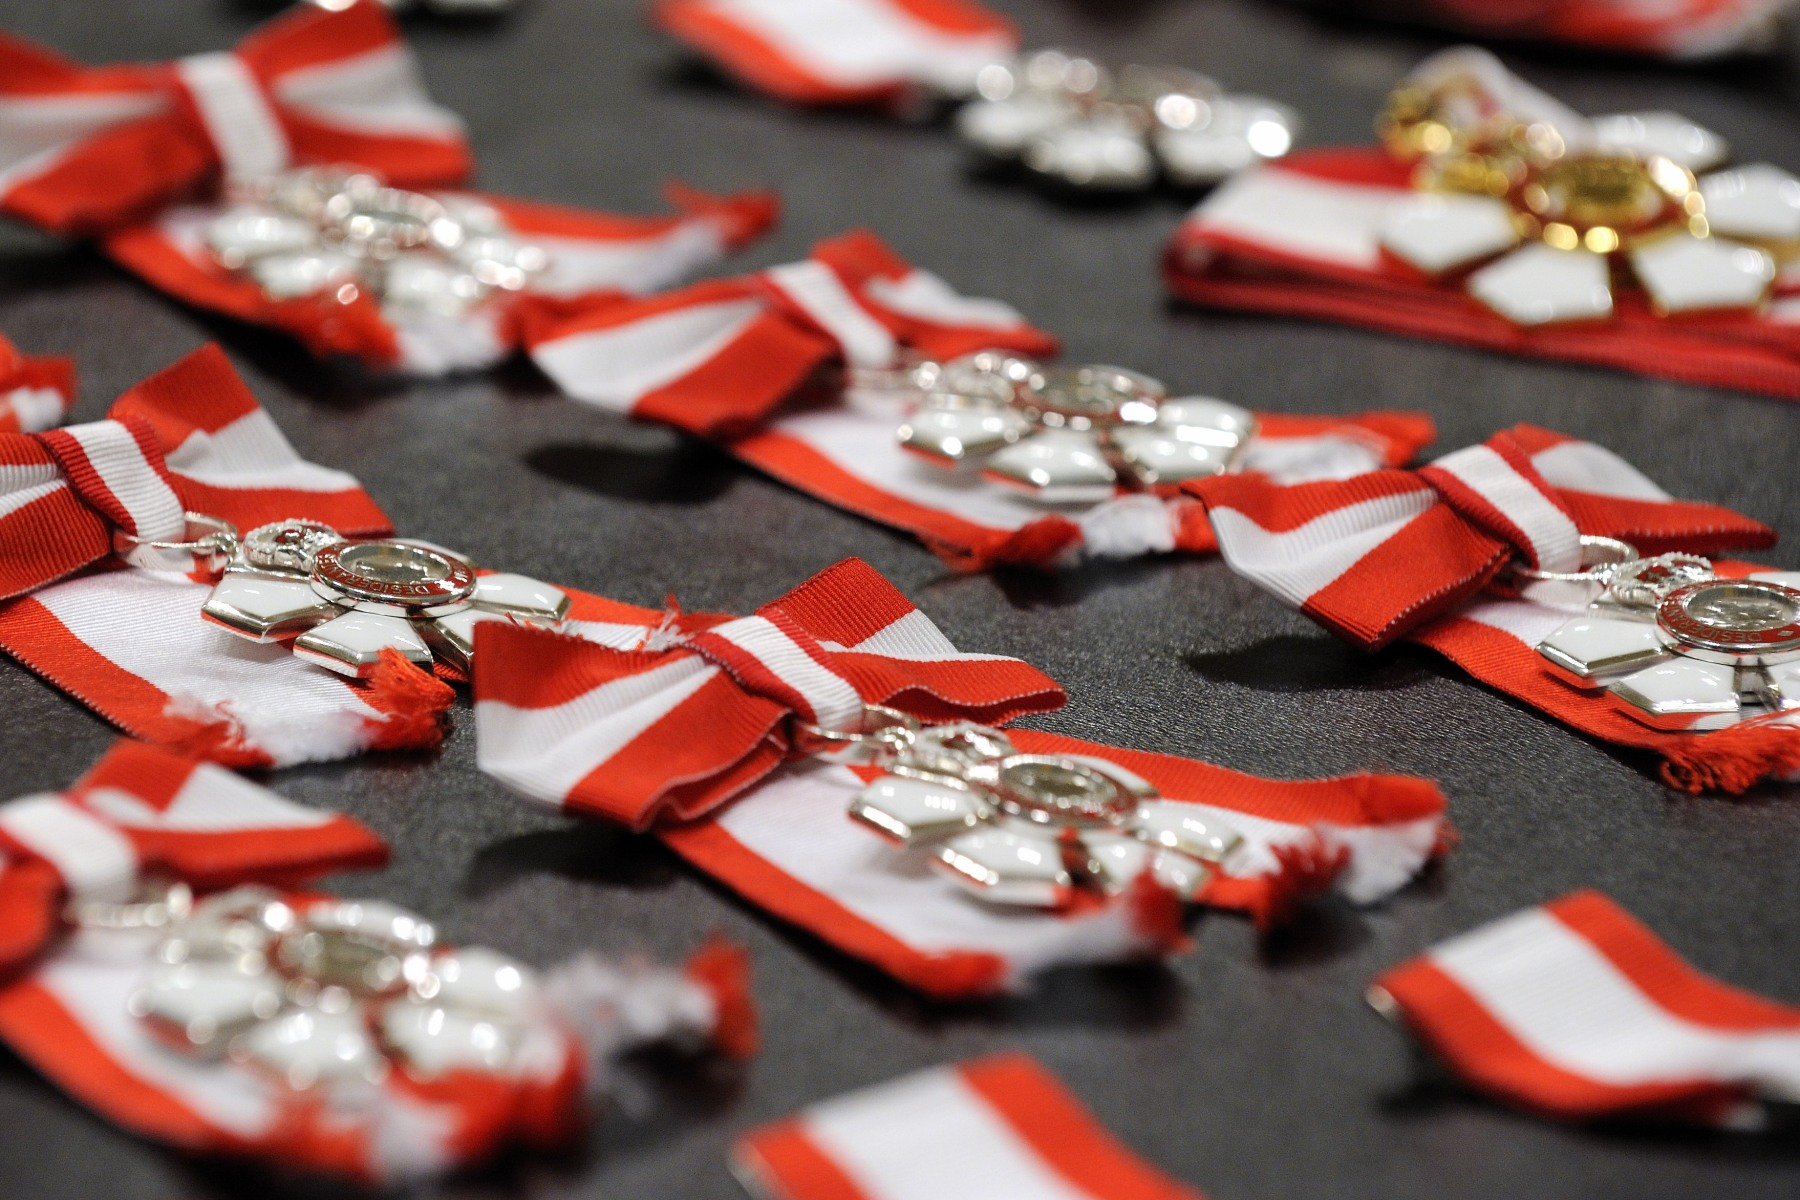 On September 28, 2012, the Governor General, who is chancellor and Principal Companion of the Order of Canada, bestowed the honour on 27 Members, 15 Officers and 1 Companion, at Rideau Hall.